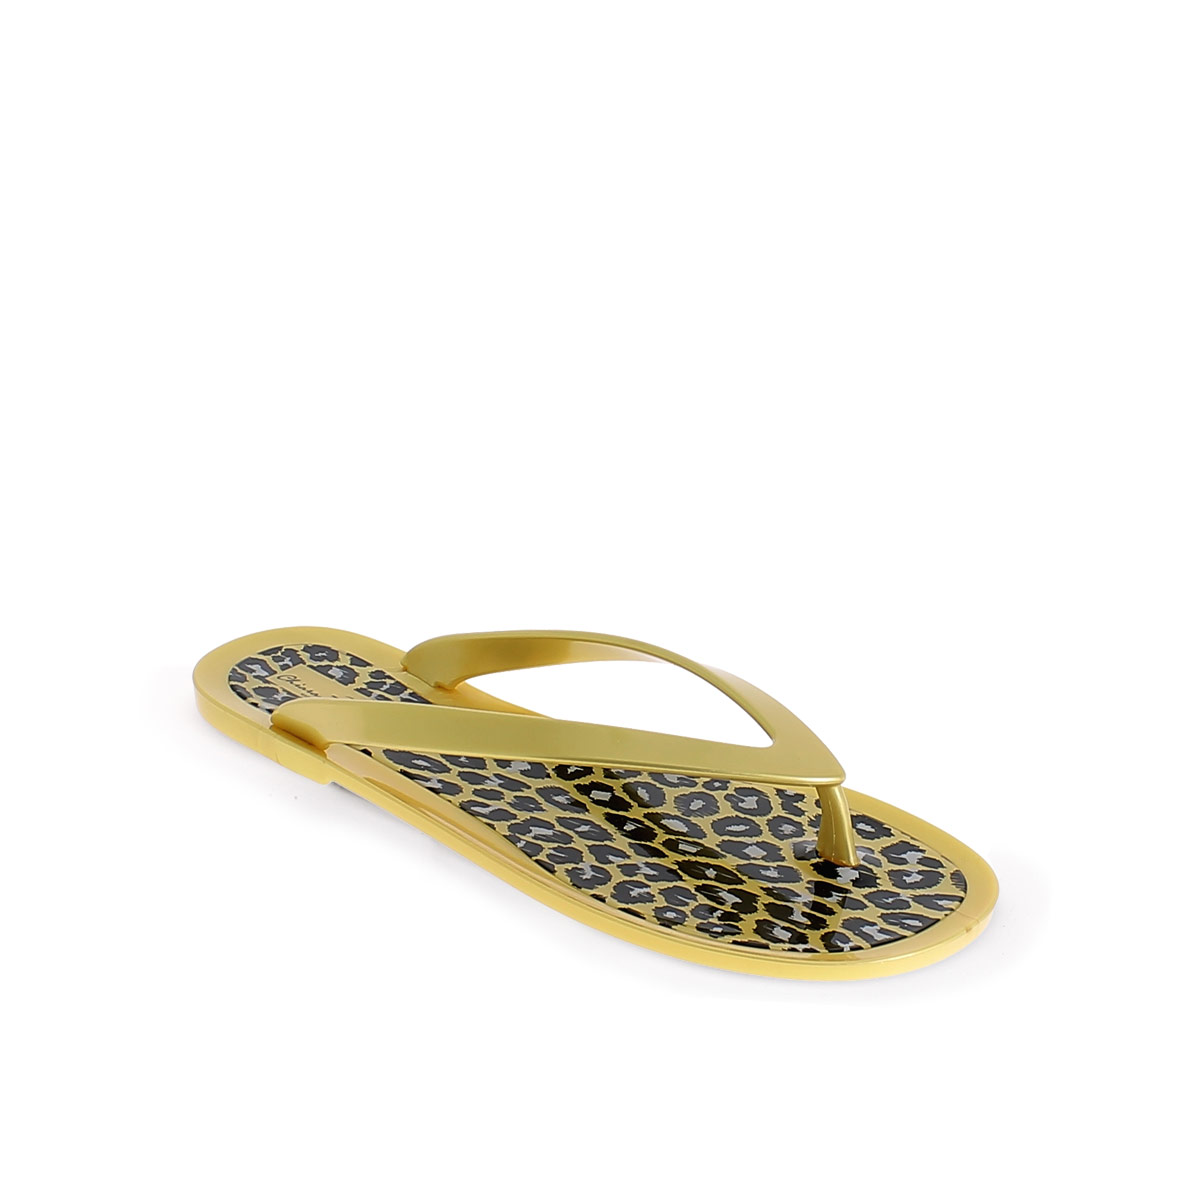 GOLD PVC THONG SLIPPER WITH LEOPARD PRINTING INSOLE